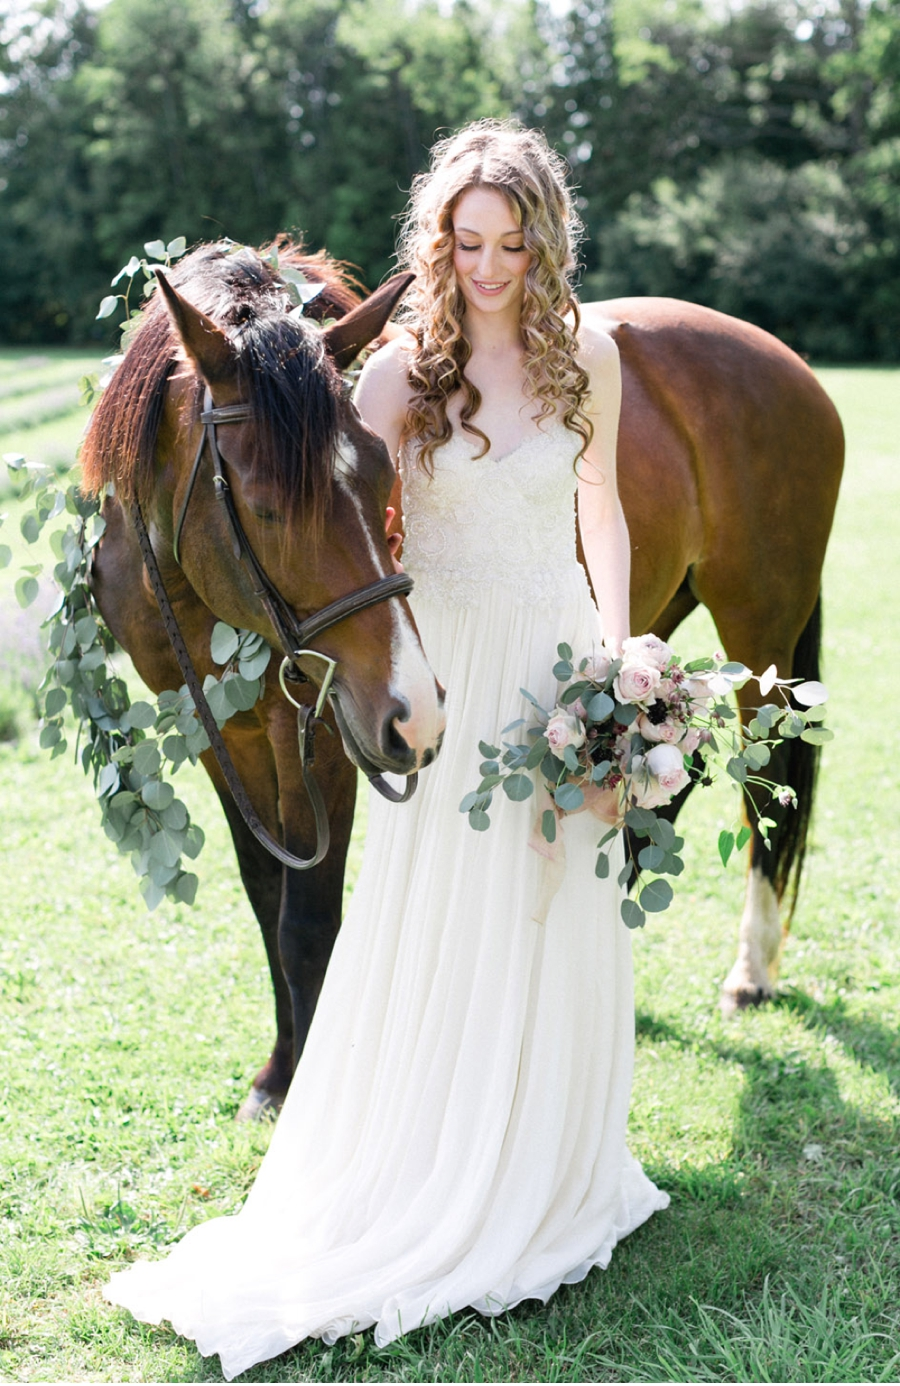 Bride-with-Horse-and-Floral-Decor